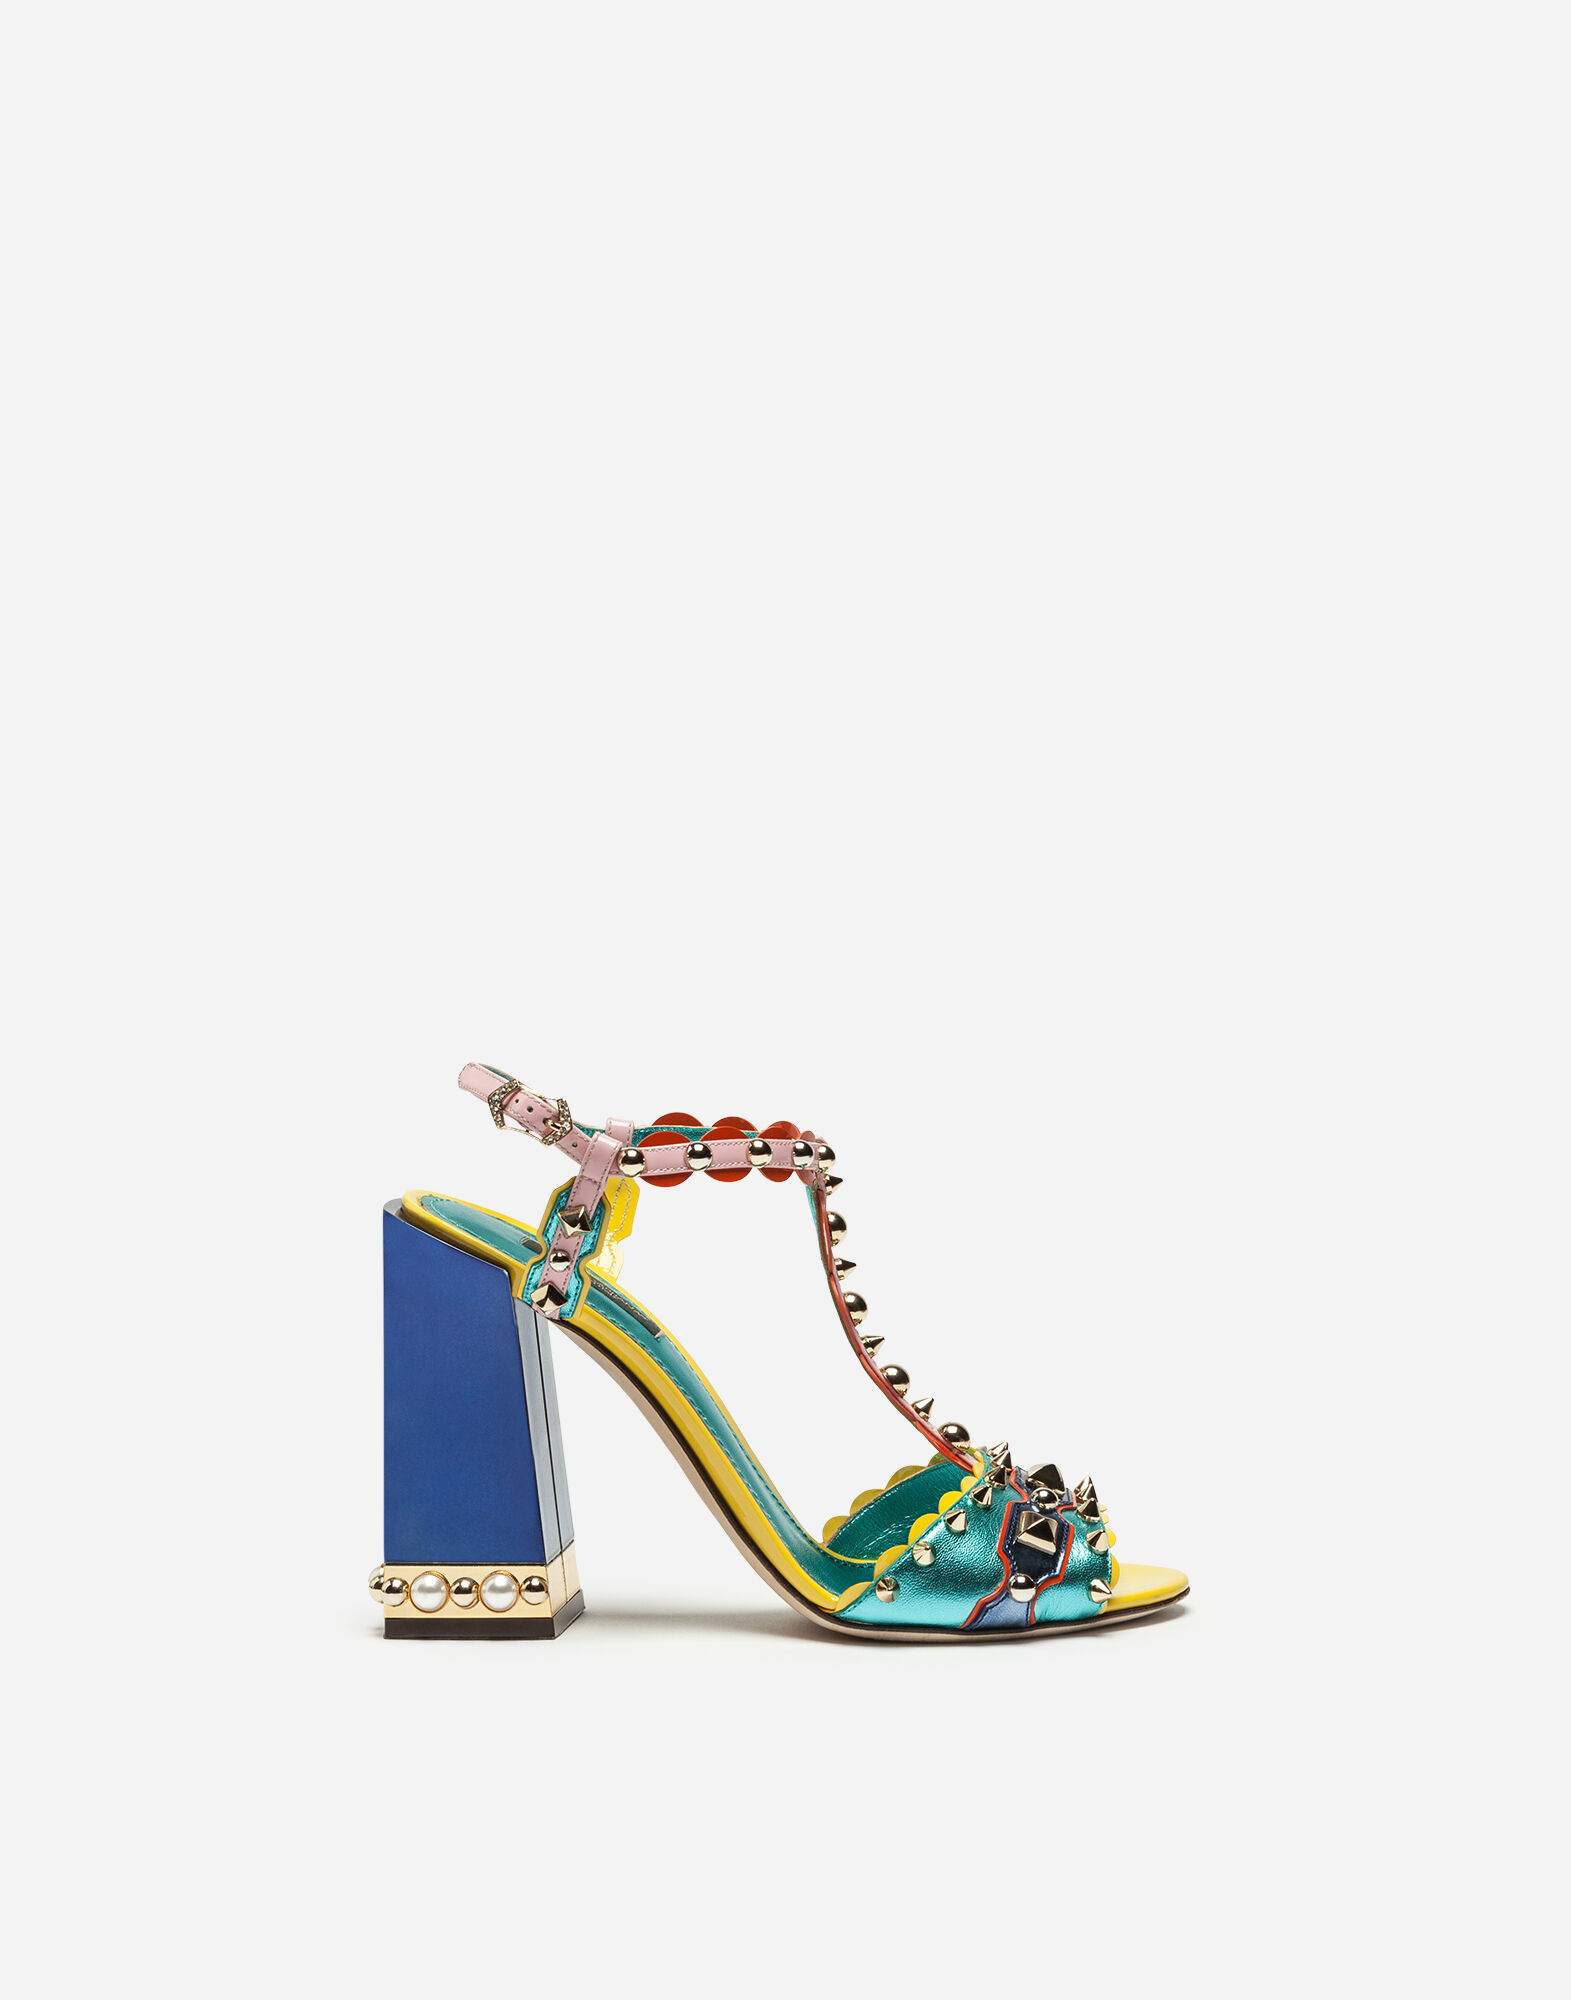 Dolce & Gabbana Woman Crystal-embellished Fringe-trimmed Printed Patent-leather Sandals Red Size 35.5 Dolce & Gabbana kjiB5LCP8